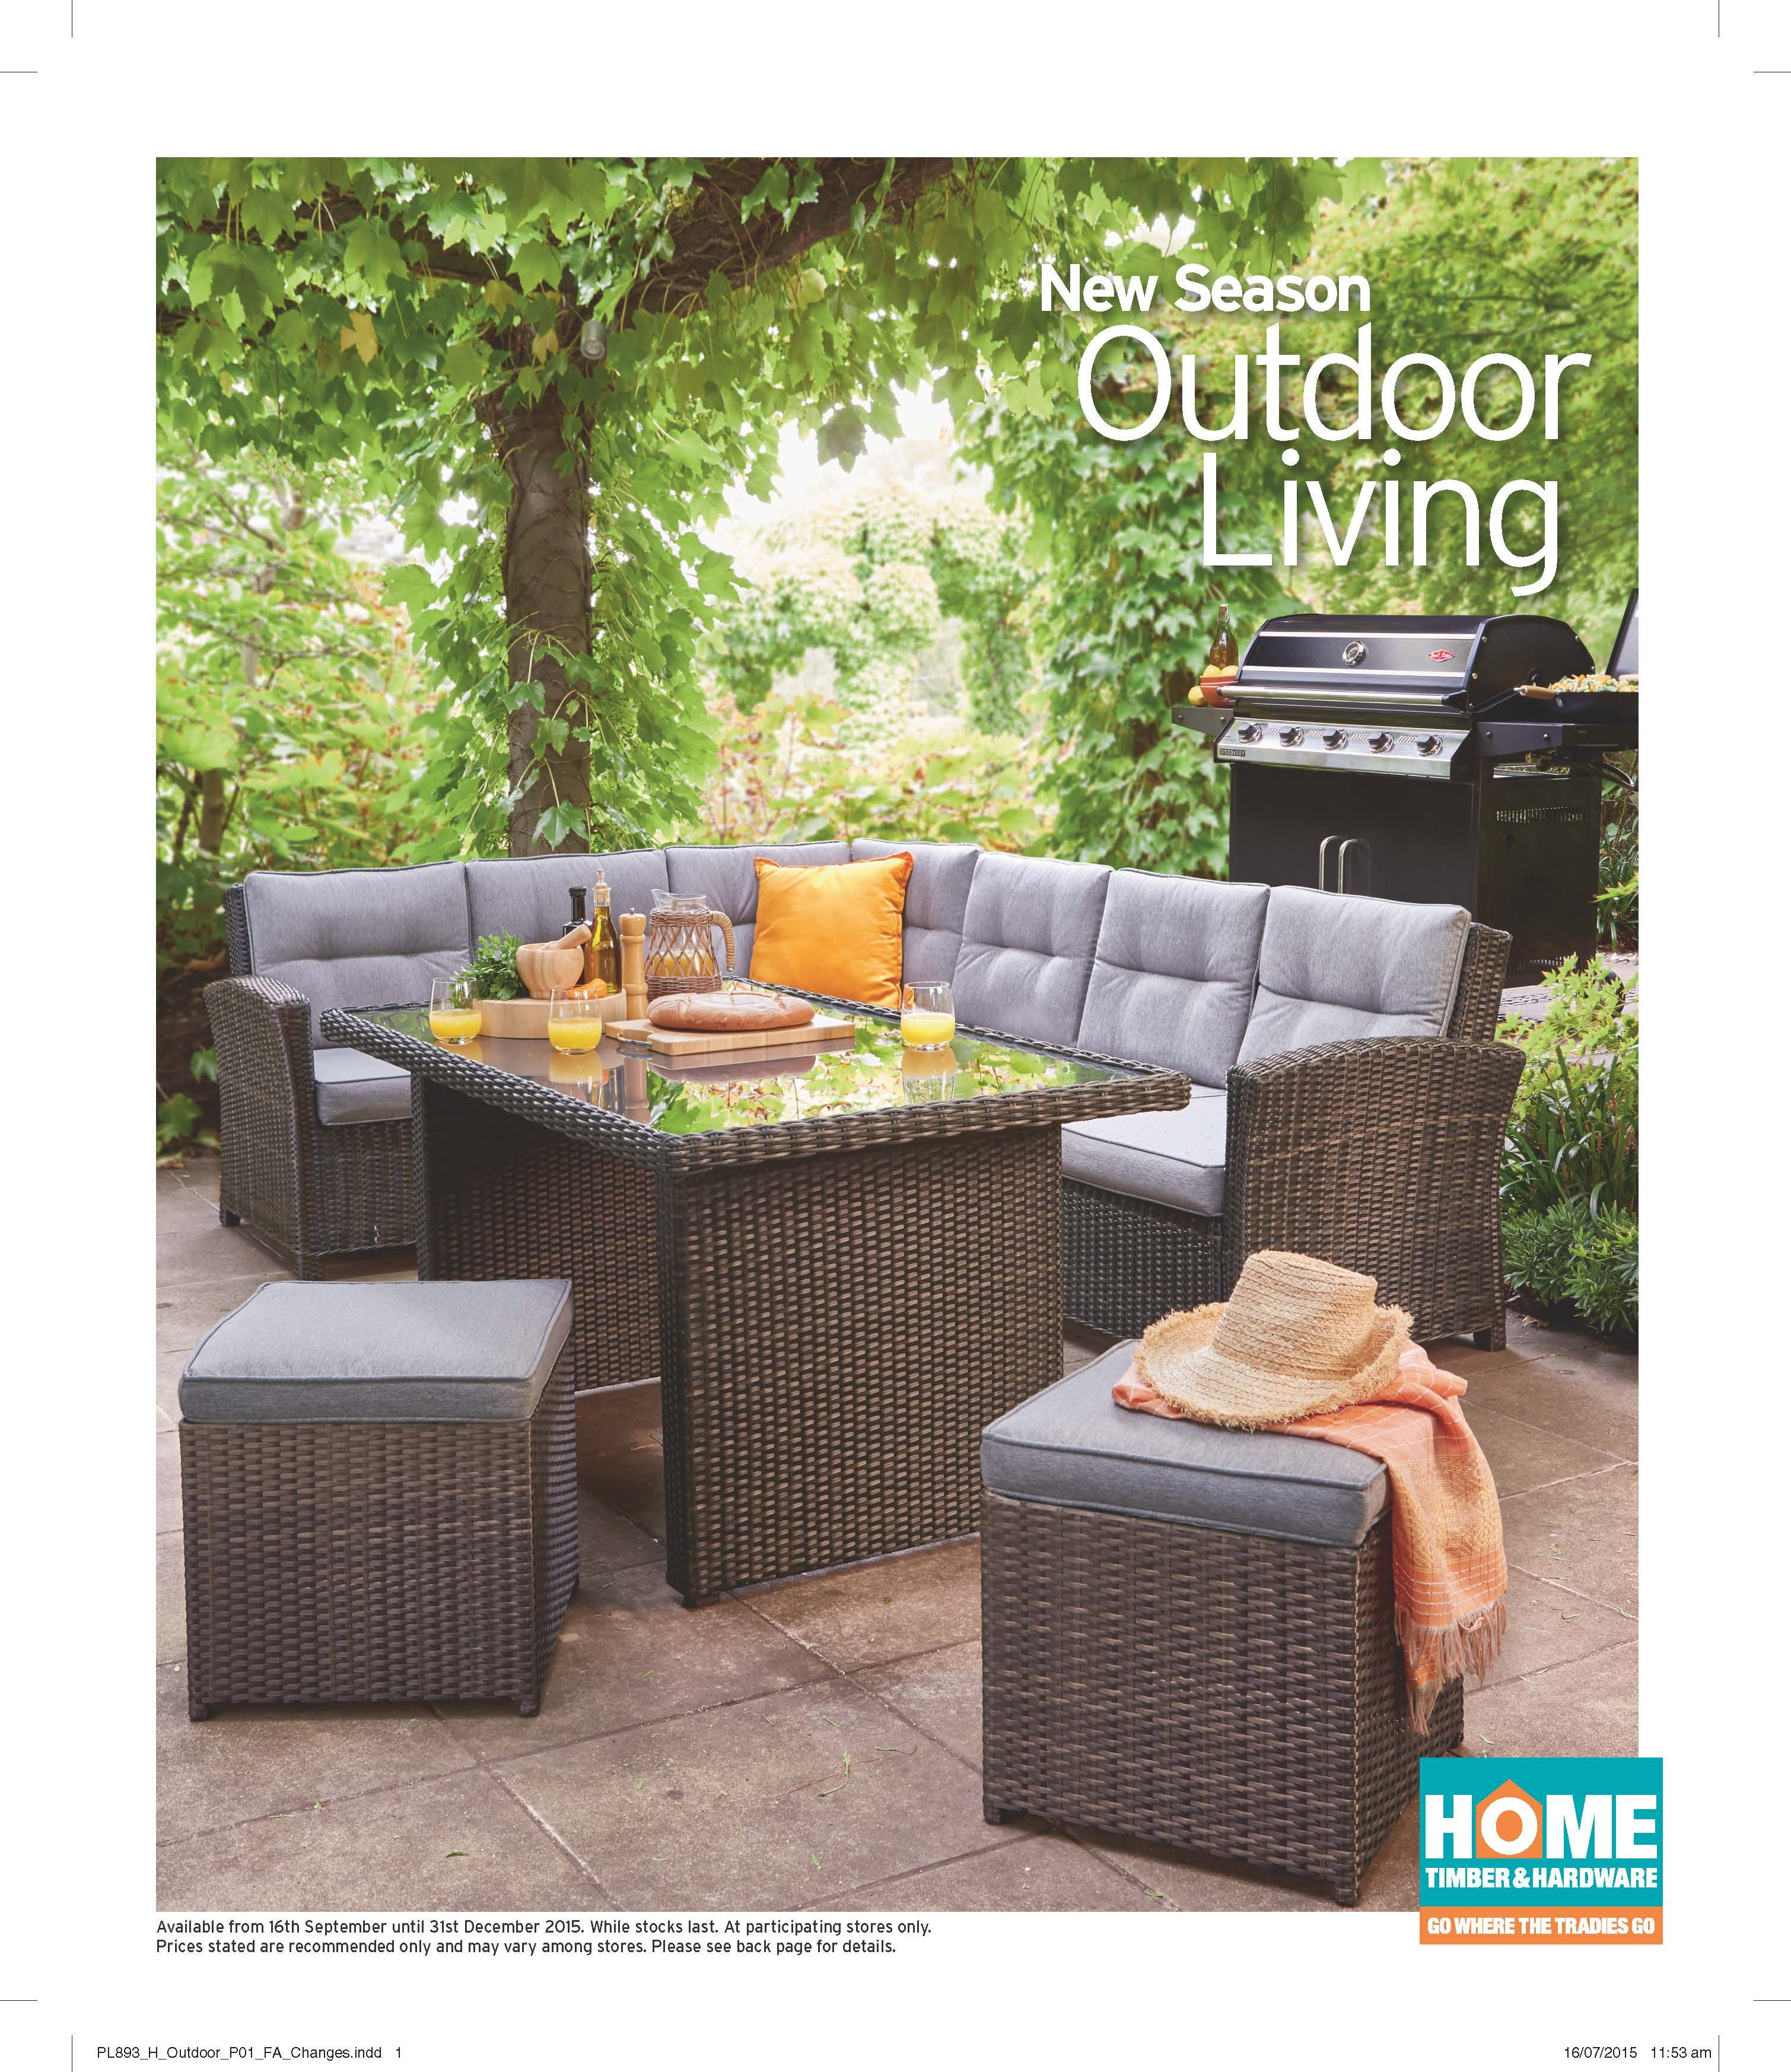 Outdoor living 2015 available at simon home timber hardware 9 wilkinson street harlaxton toowoomba